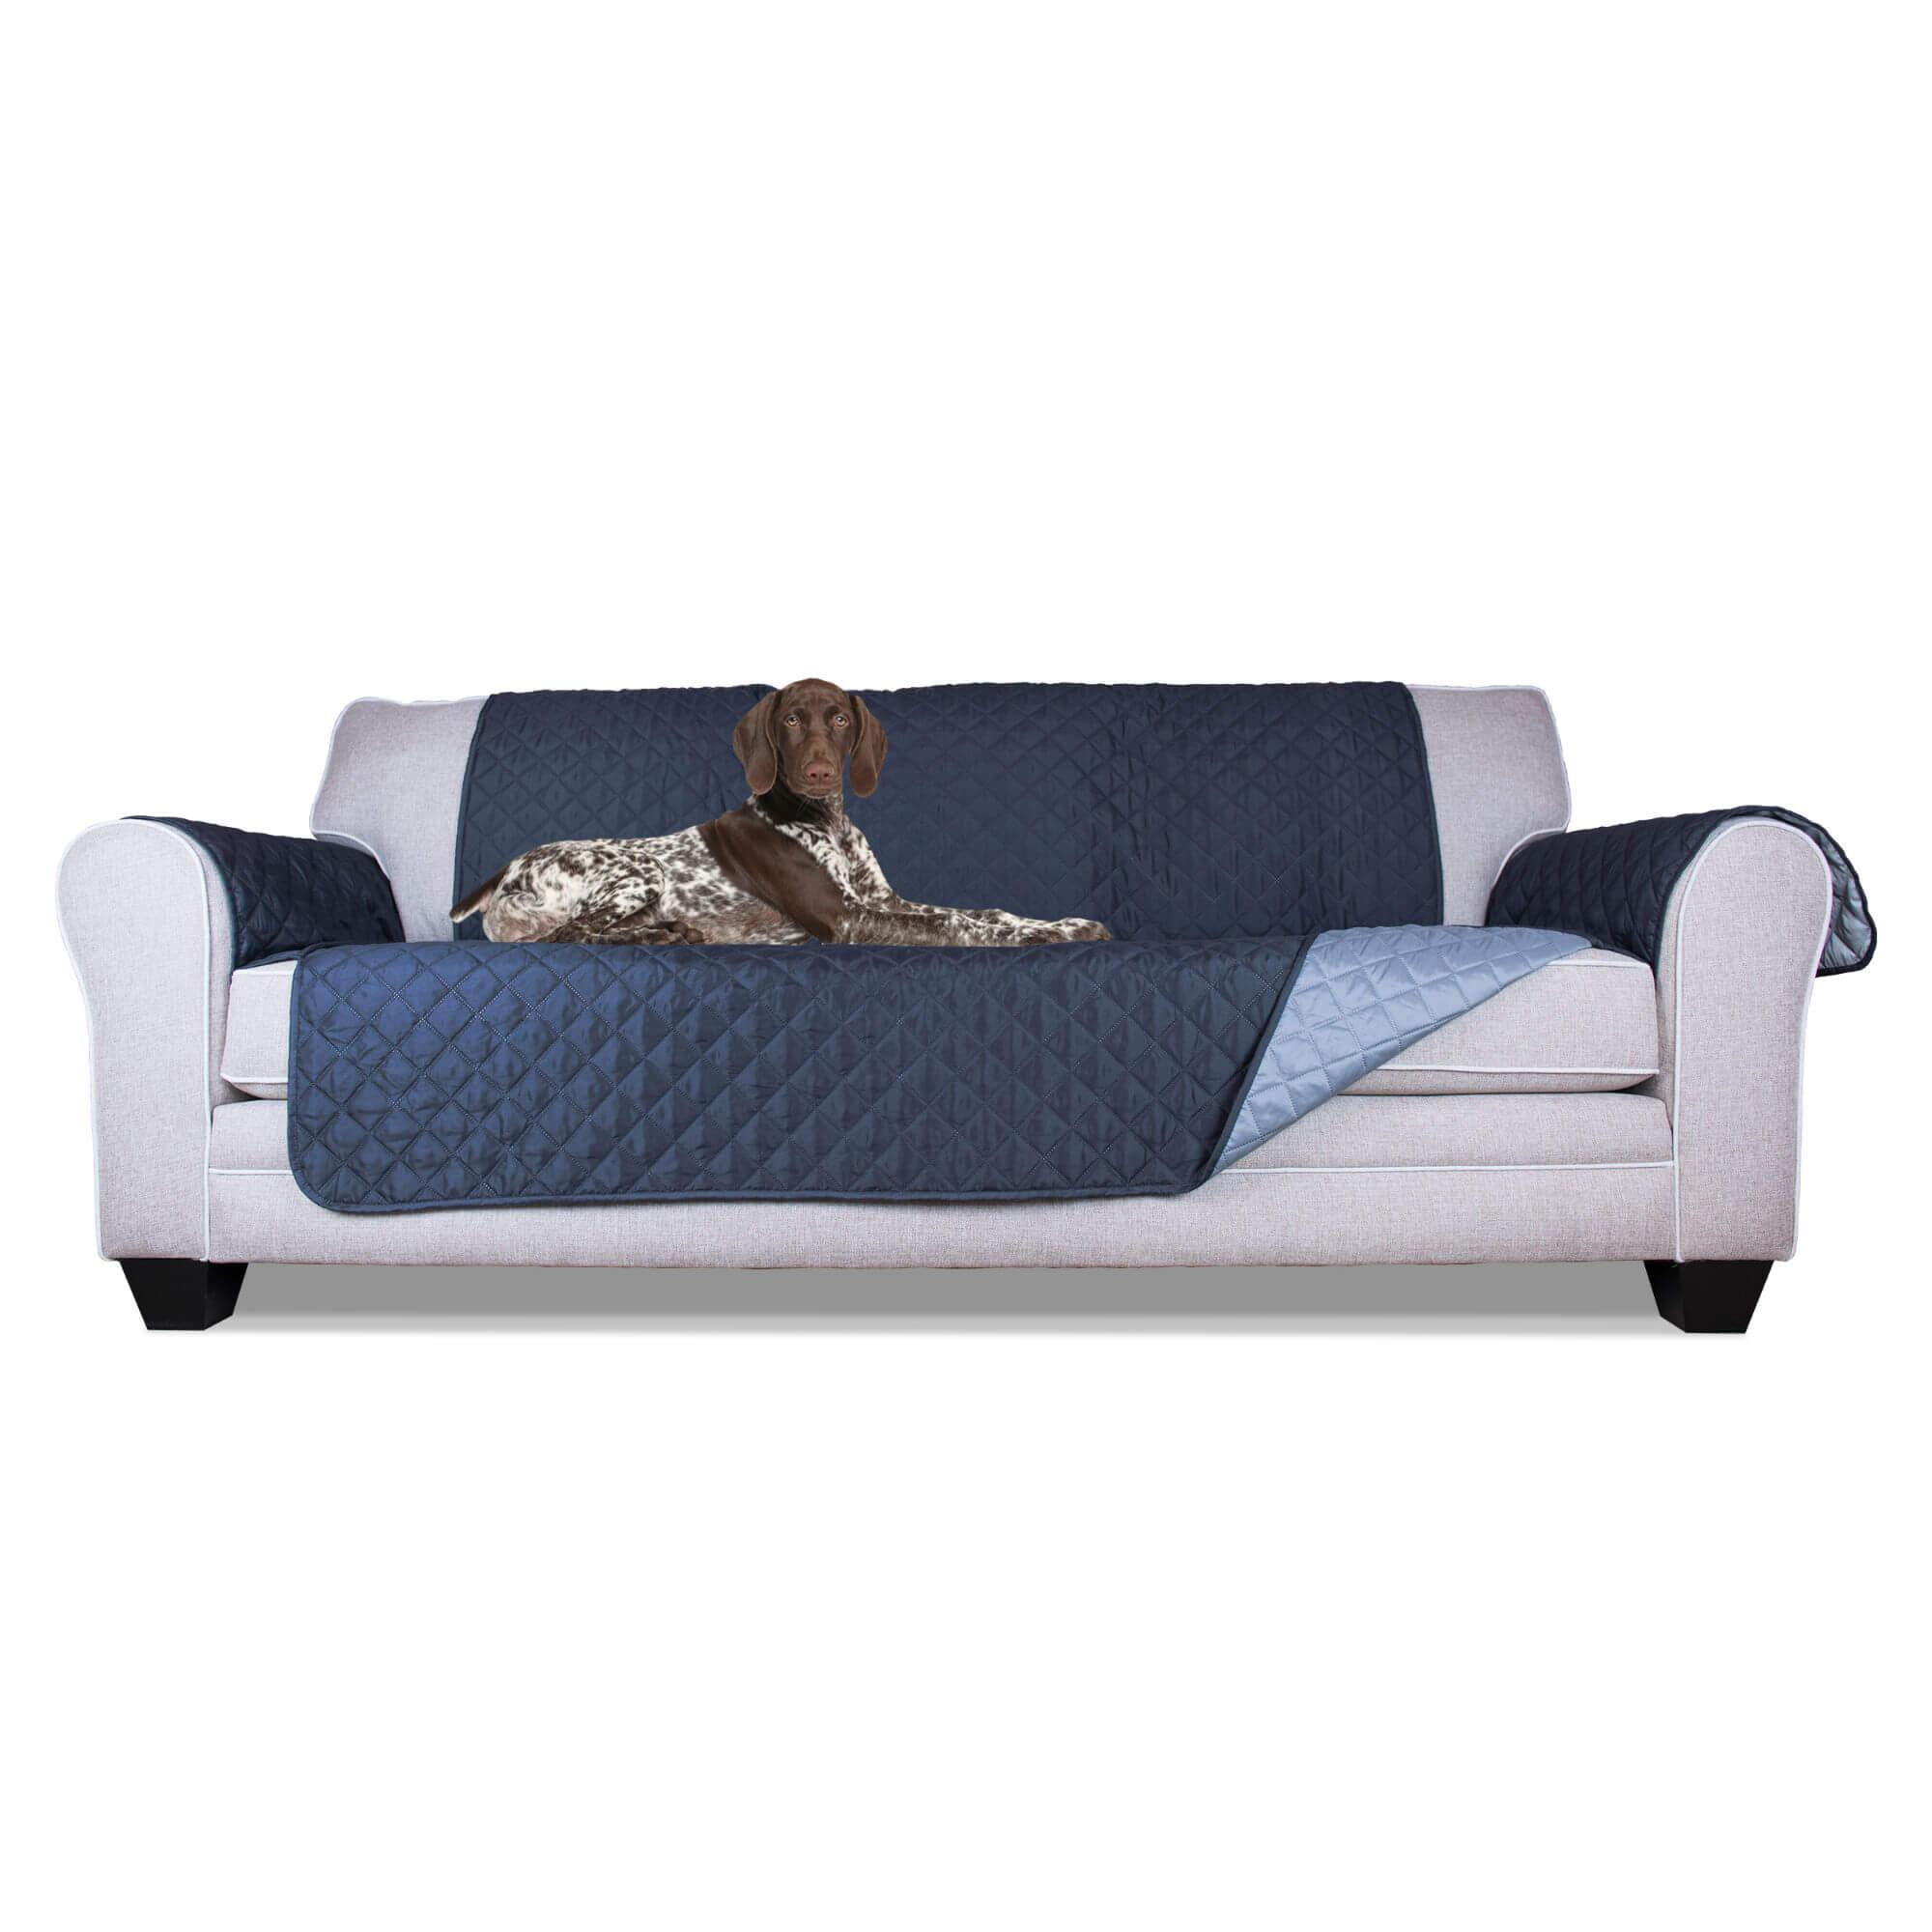 FurHaven Reversible Sofa Protector - Pet Furniture Cover